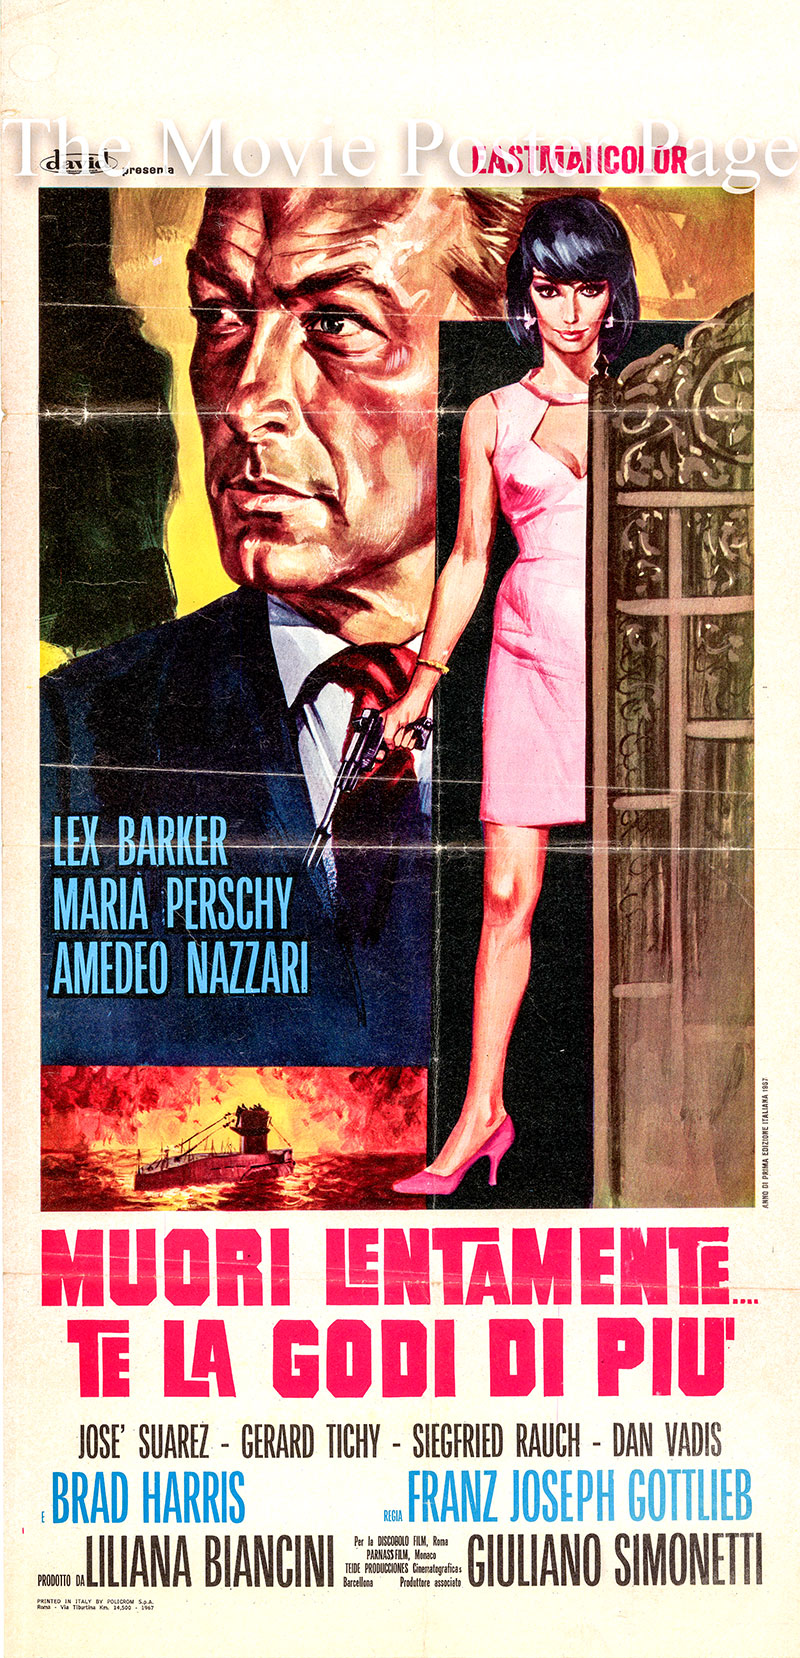 Pictured is an Italian locandina promotional poster for the 1967 Franz Josef Gottlieb film Spy Today Die Tomorrow starring Lex Barker.